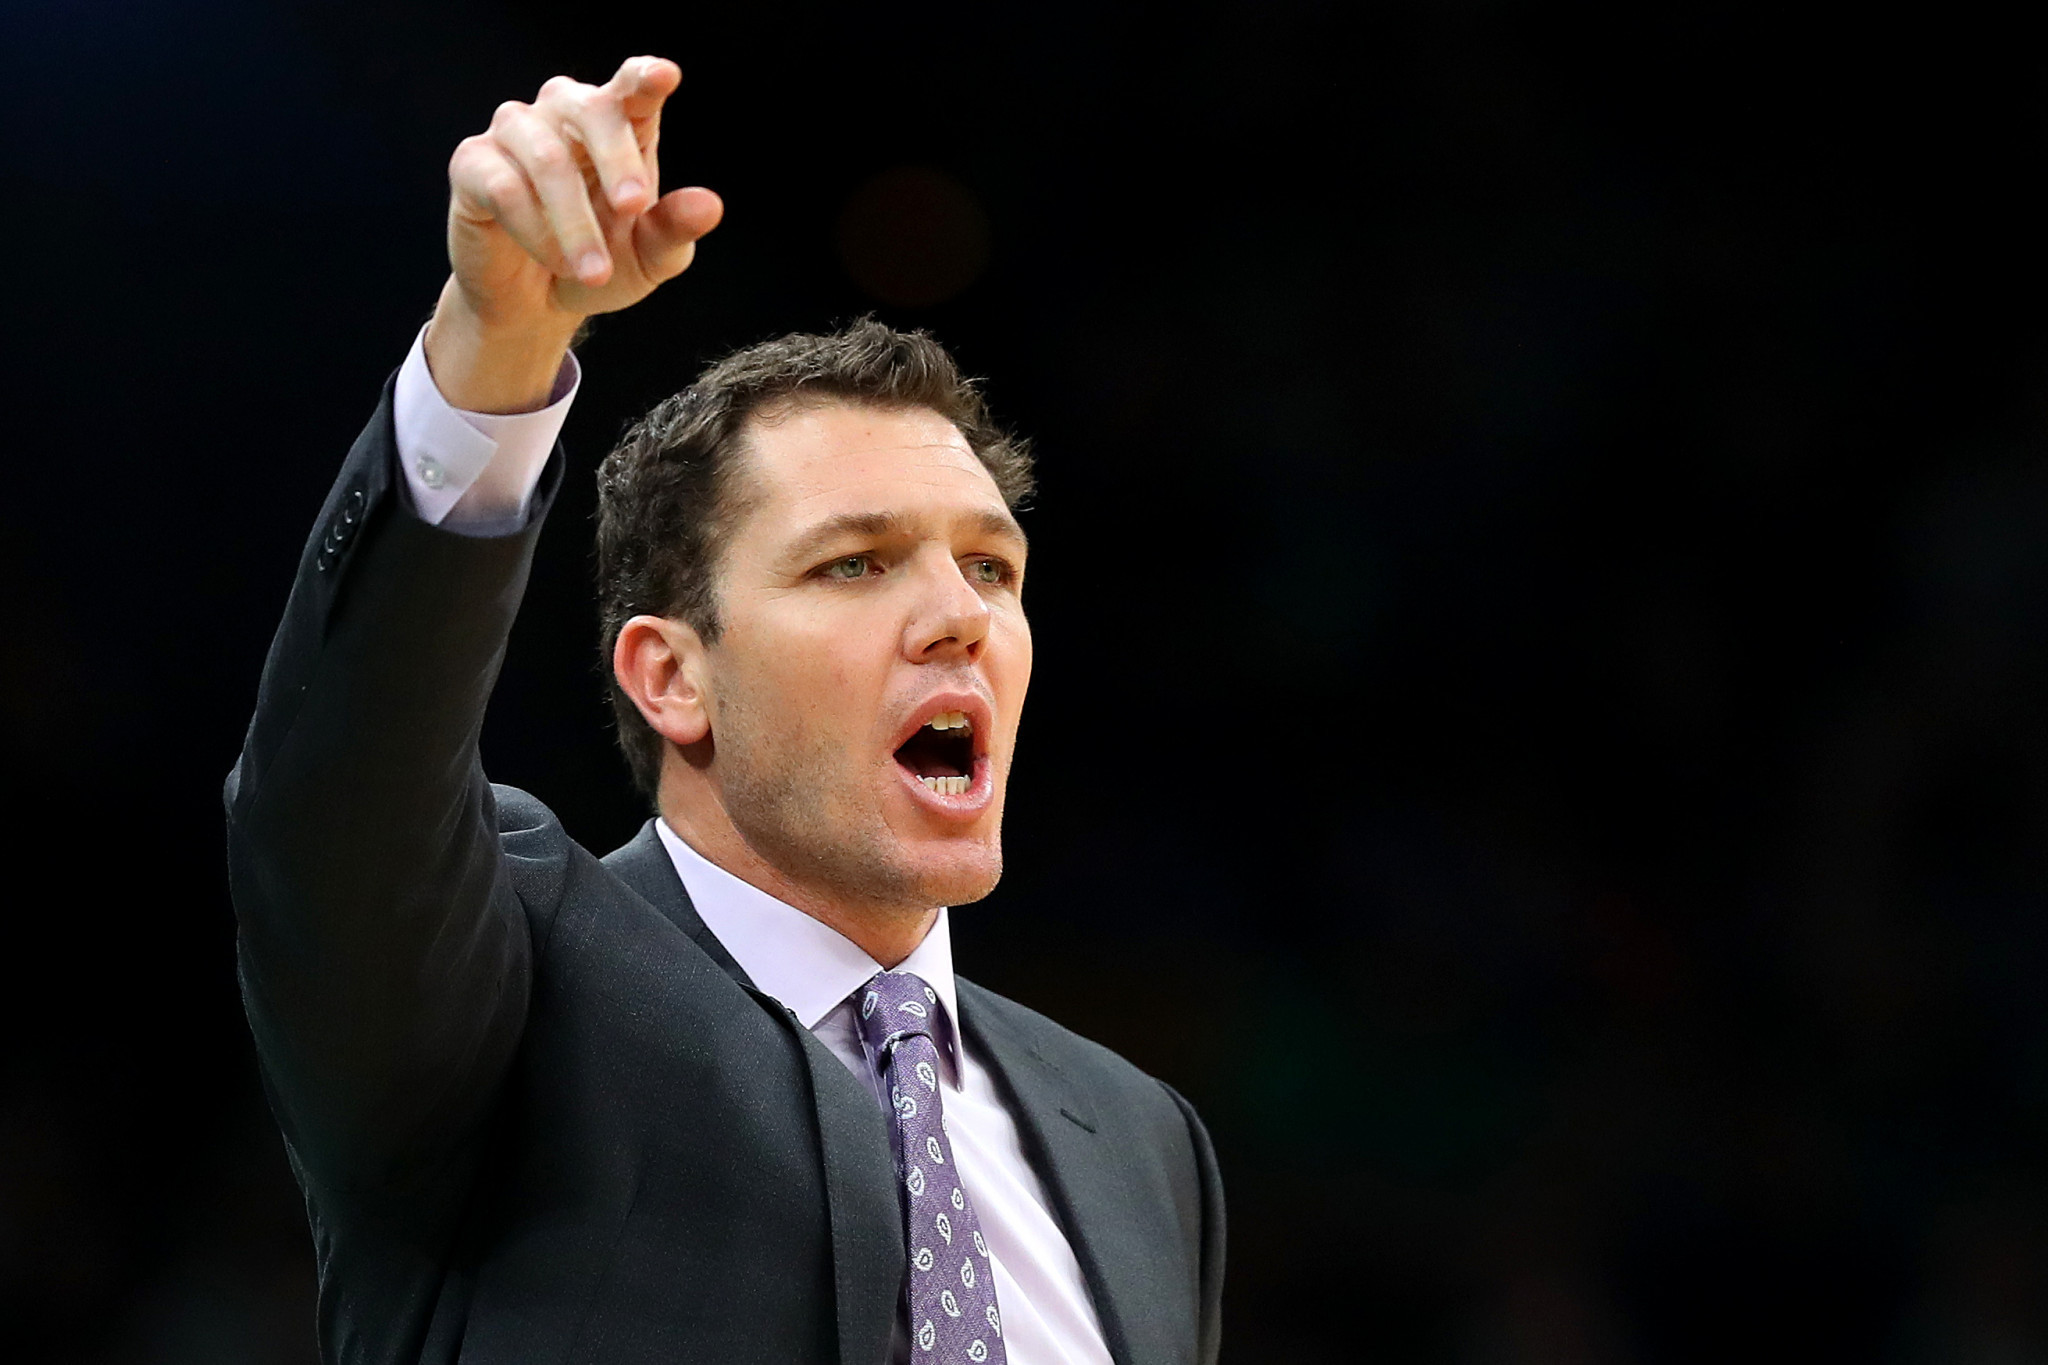 US sports journalist sues Sacramento Kings head coach Walton for alleged sexual assault